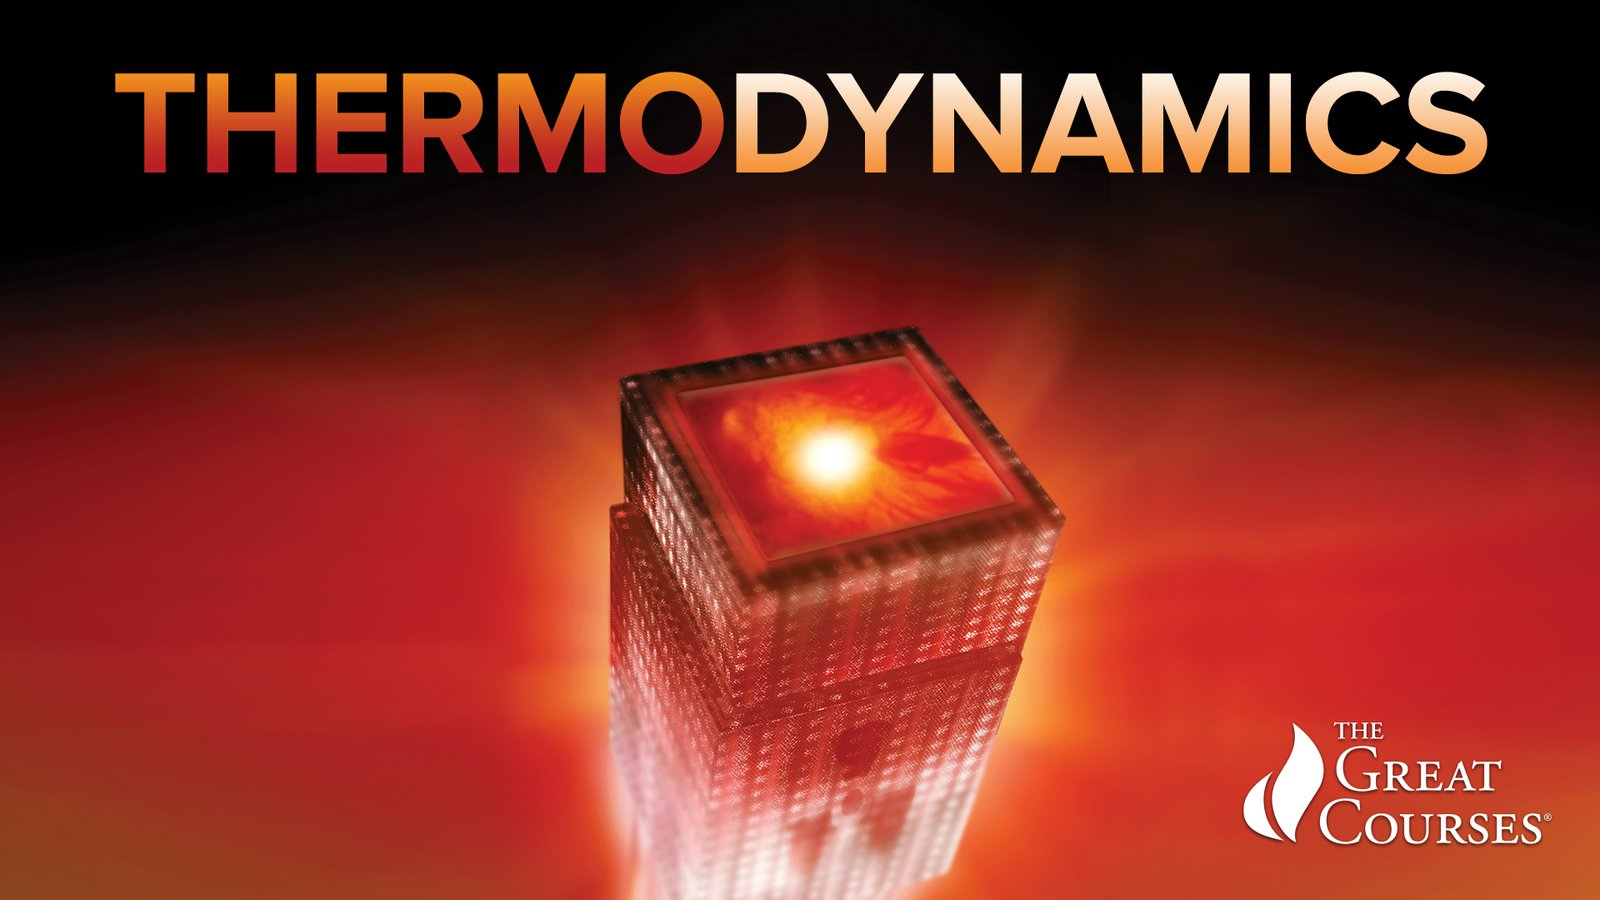 Thermodynamics - Four Laws That Move the Universe